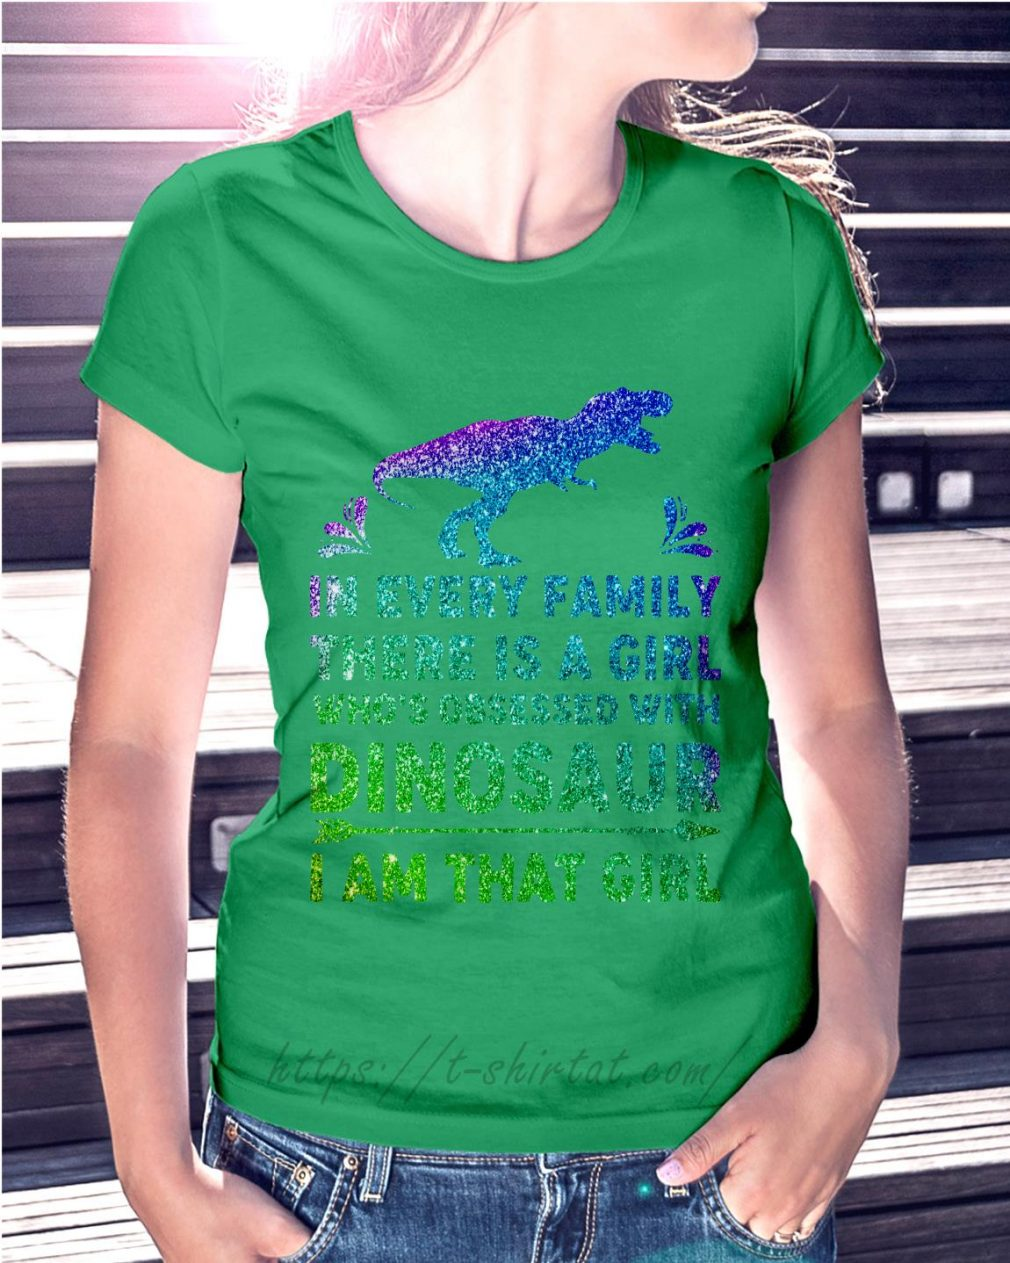 In every family there is a girl who's obsessed with dinosaur Ladies tee green